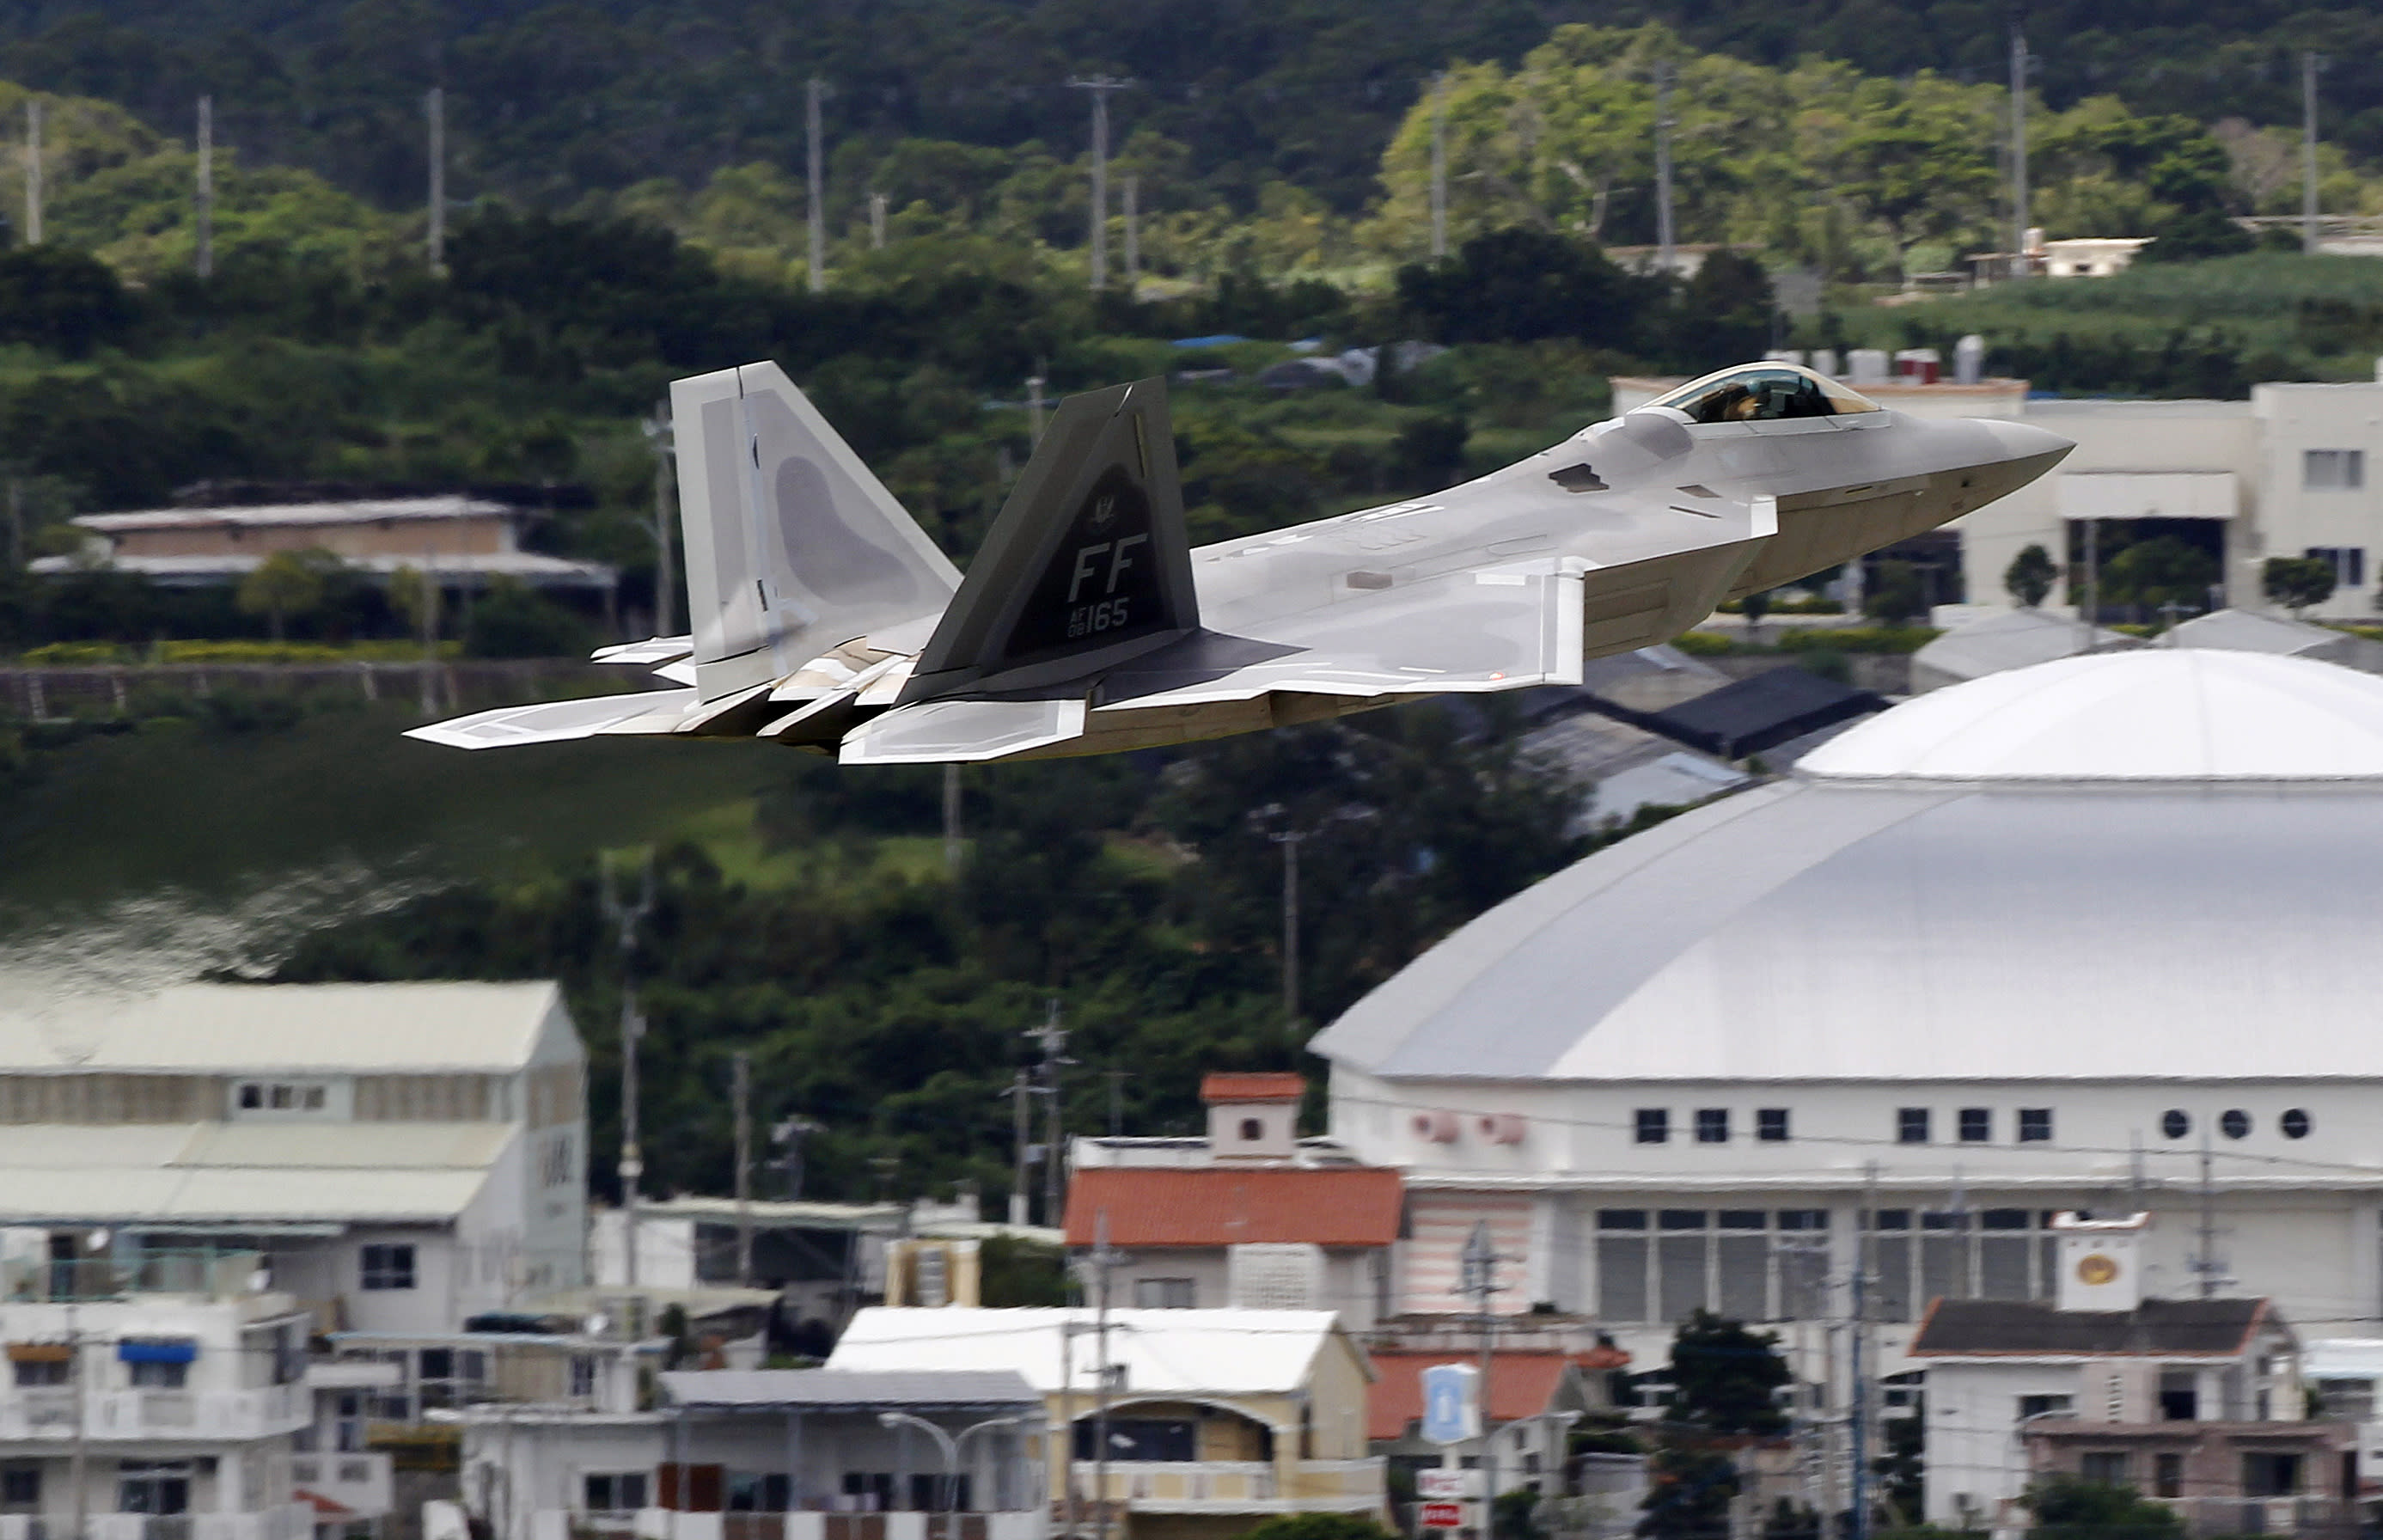 In this Aug. 14, 2012 photo, a U.S. Air Force F-22 Raptor stealth fighter takes off from Kadena Air Base on the southern island of Okinawa in Japan. The U.S. is hoping a dozen F-22 stealth fighters now roaring through the skies of southern Japan will prove its most prized combat aircraft is finally ready to resume full operations after years of investigations into why its pilots were getting dizzy and disoriented. But questions remain over whether the Air Force has taken enough action to fix a potentially bigger problem - the shriveling of programs to test cockpit life support systems after nearly 20 years of budget cuts, downsizing and outsourcing. (AP Photo/Greg Baker)